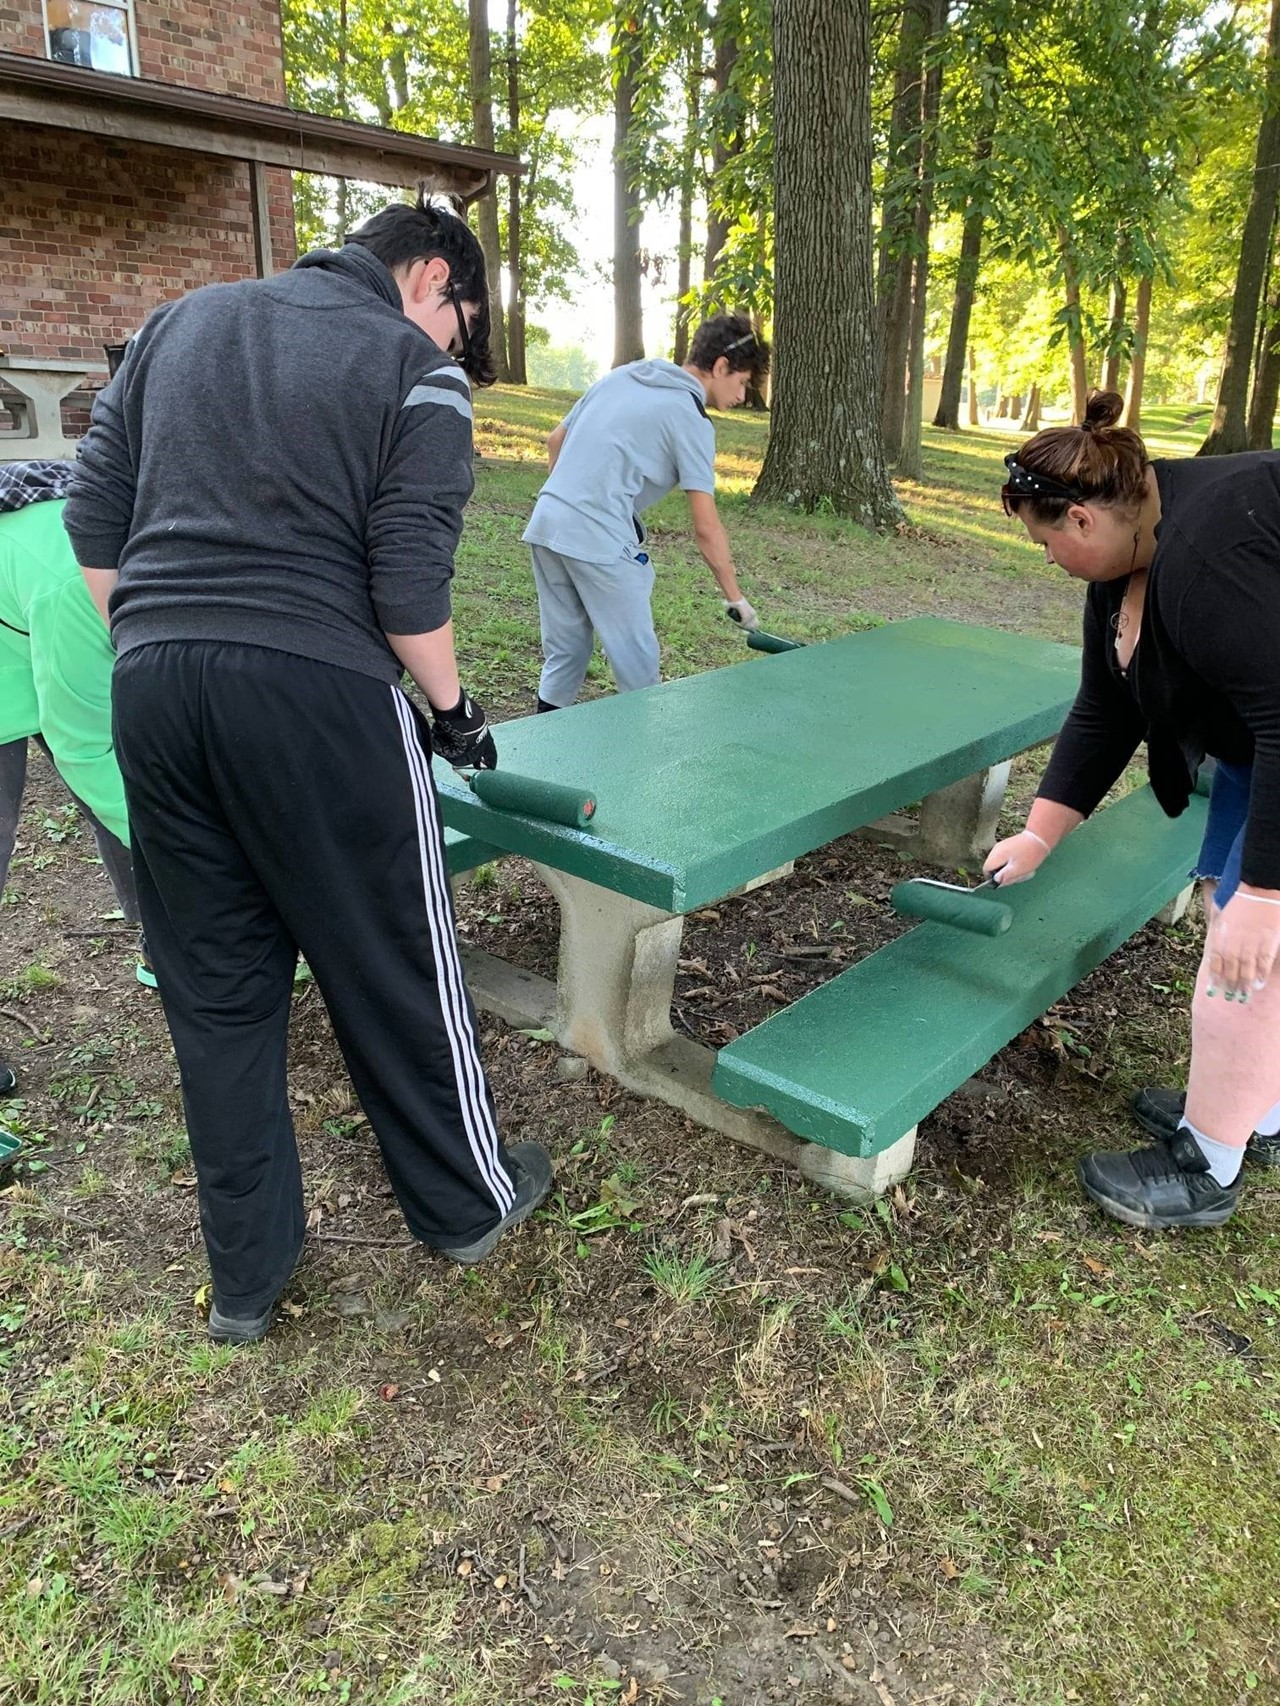 TCESC ED vocational students learn on-the-job training skills in Niles.